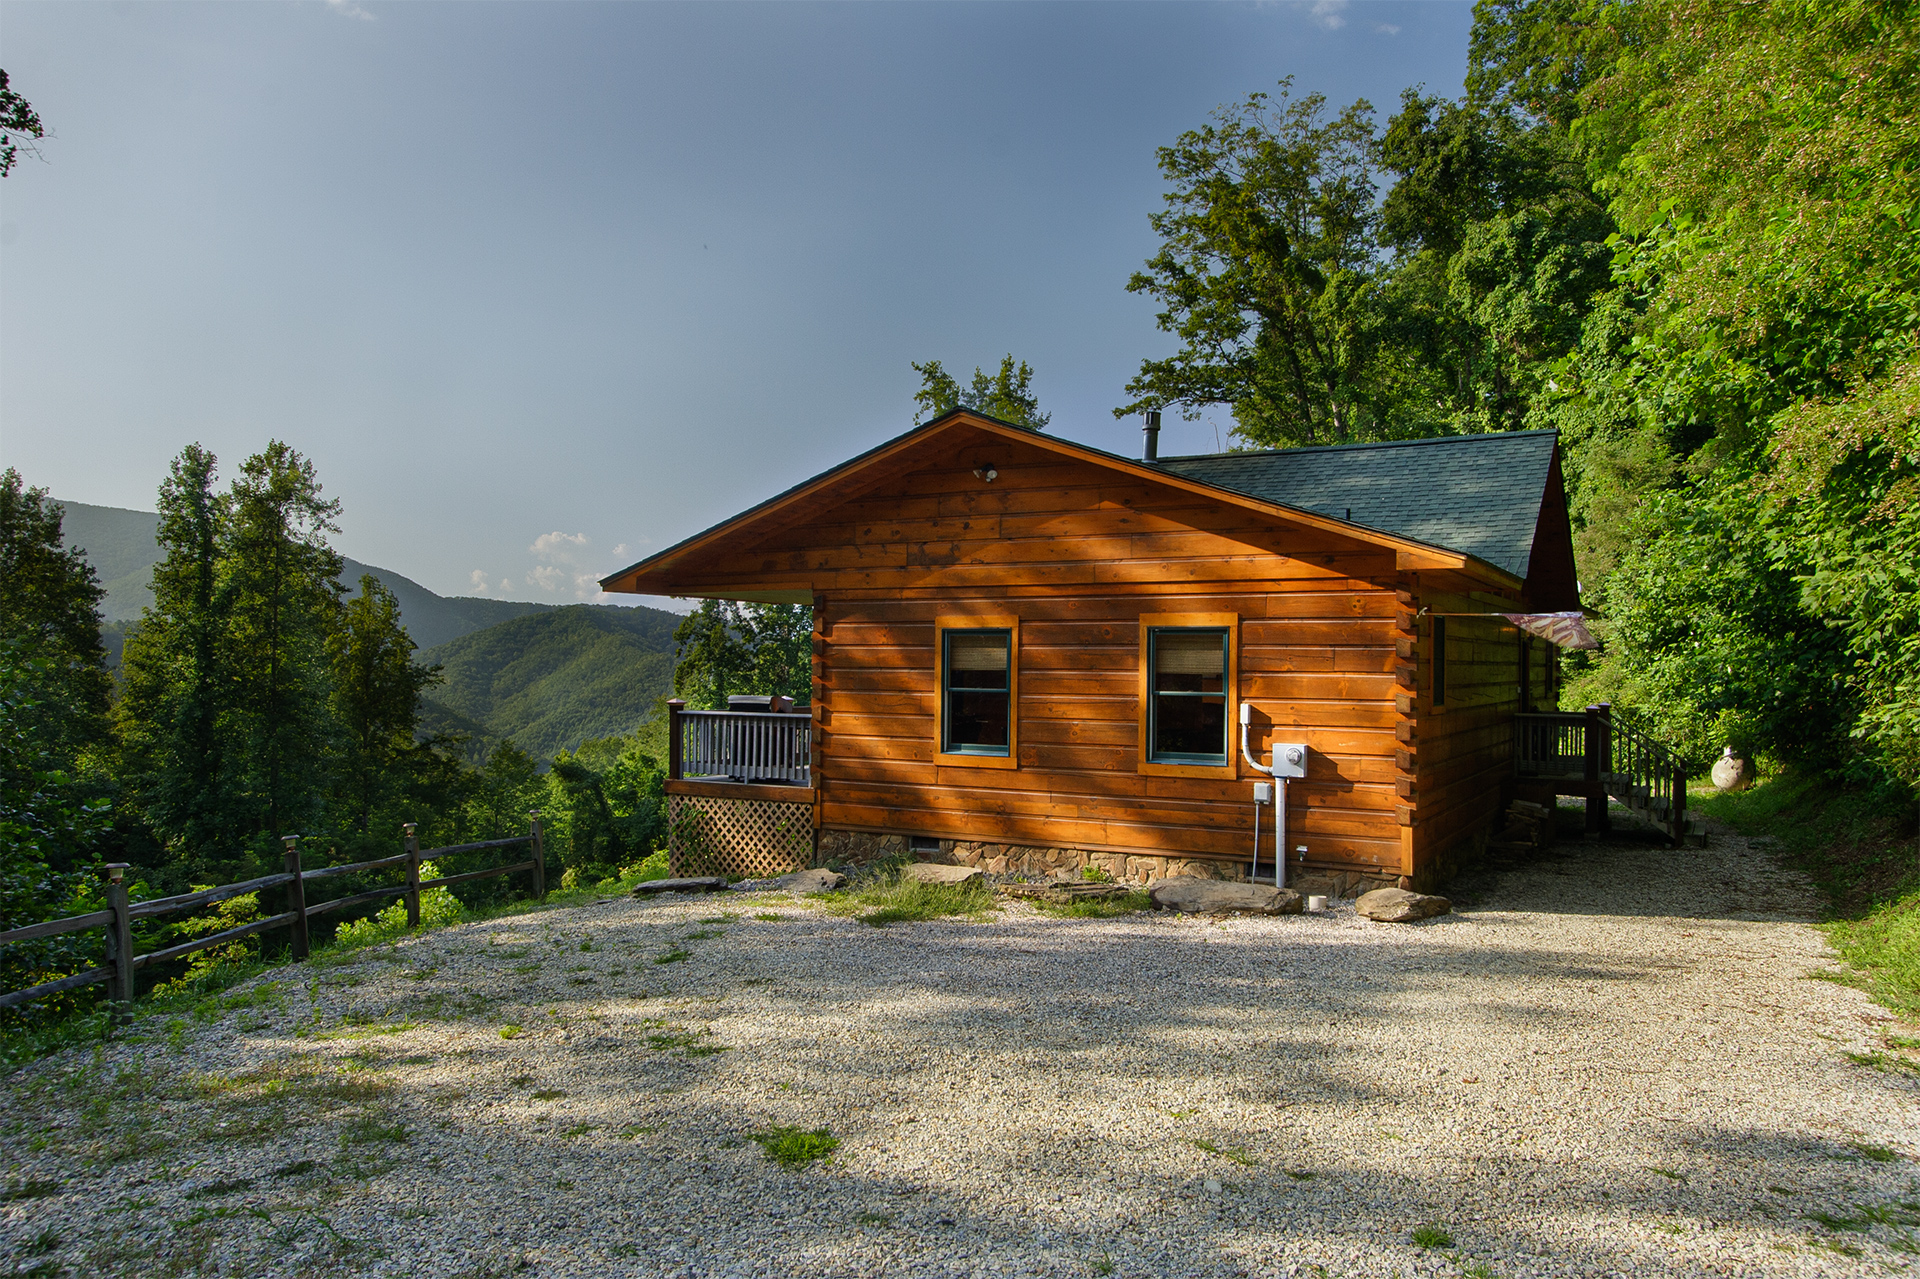 A bit of heaven nc cabin rental in the nantahala areas of Smoky mountain nc cabin rentals